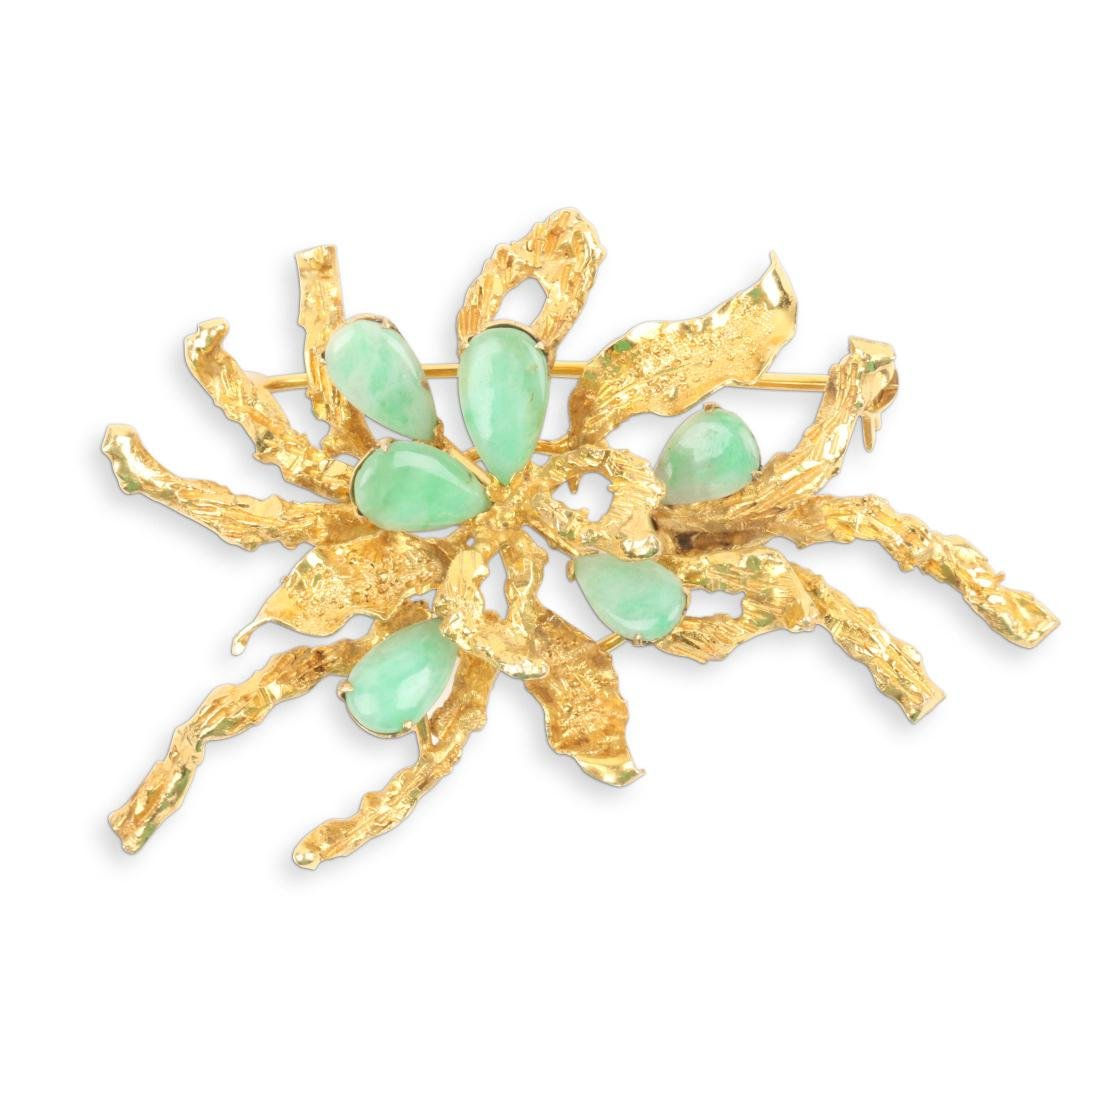 A Chinese 14K Gold & Jade Brooch